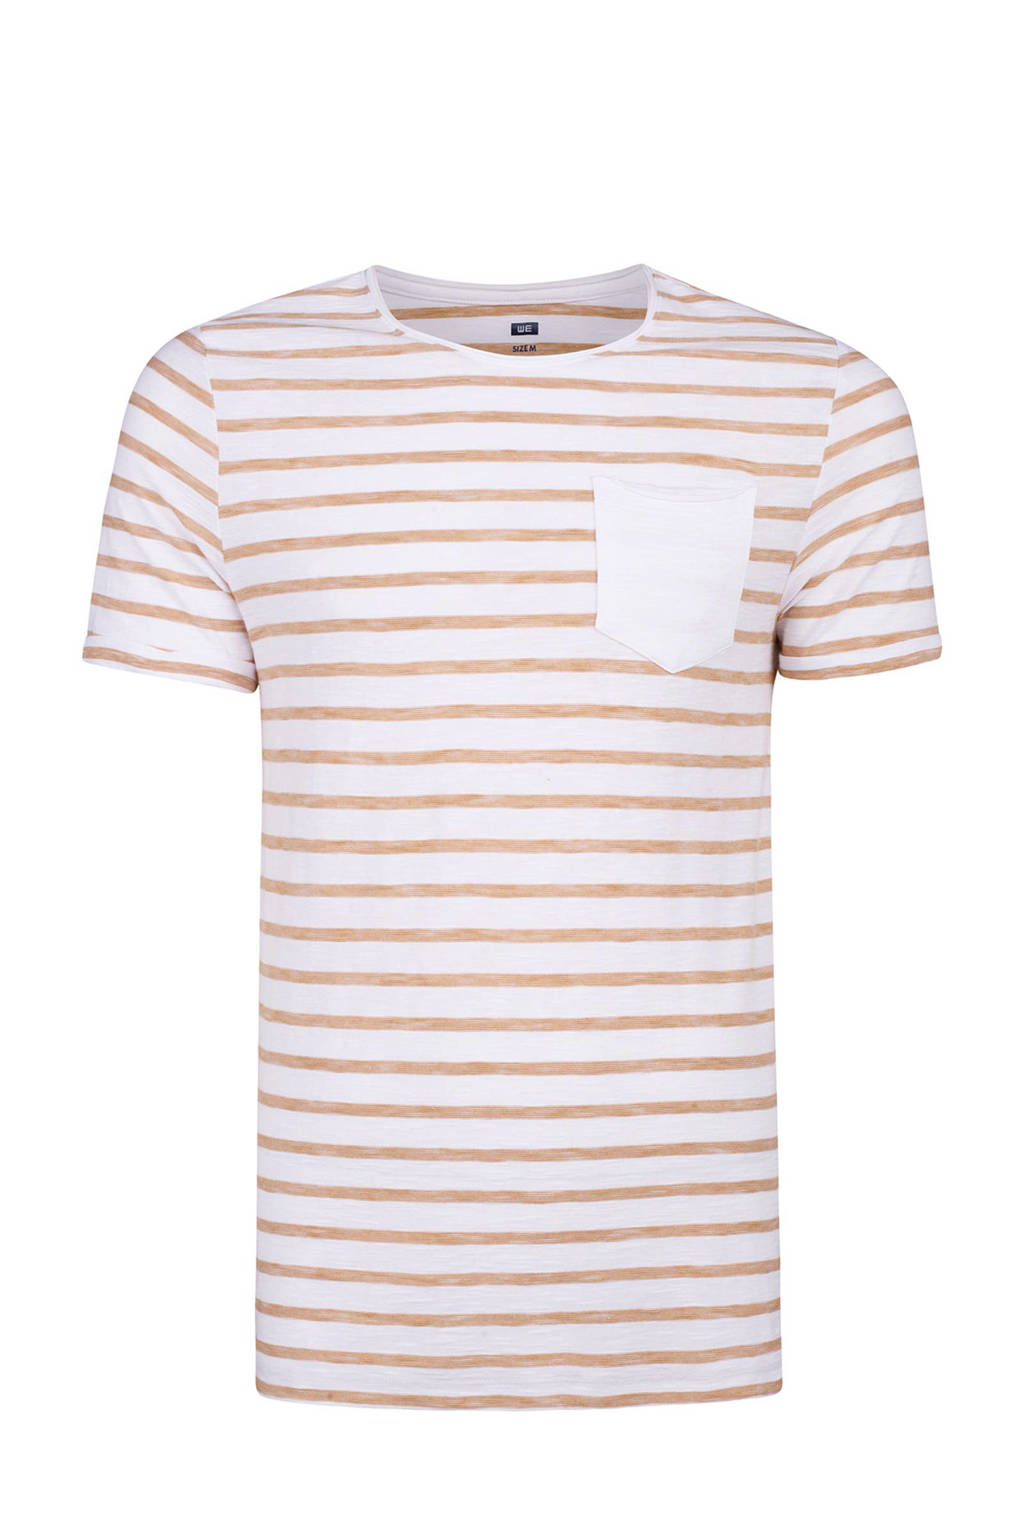 WE Fashion T-shirt, Beige